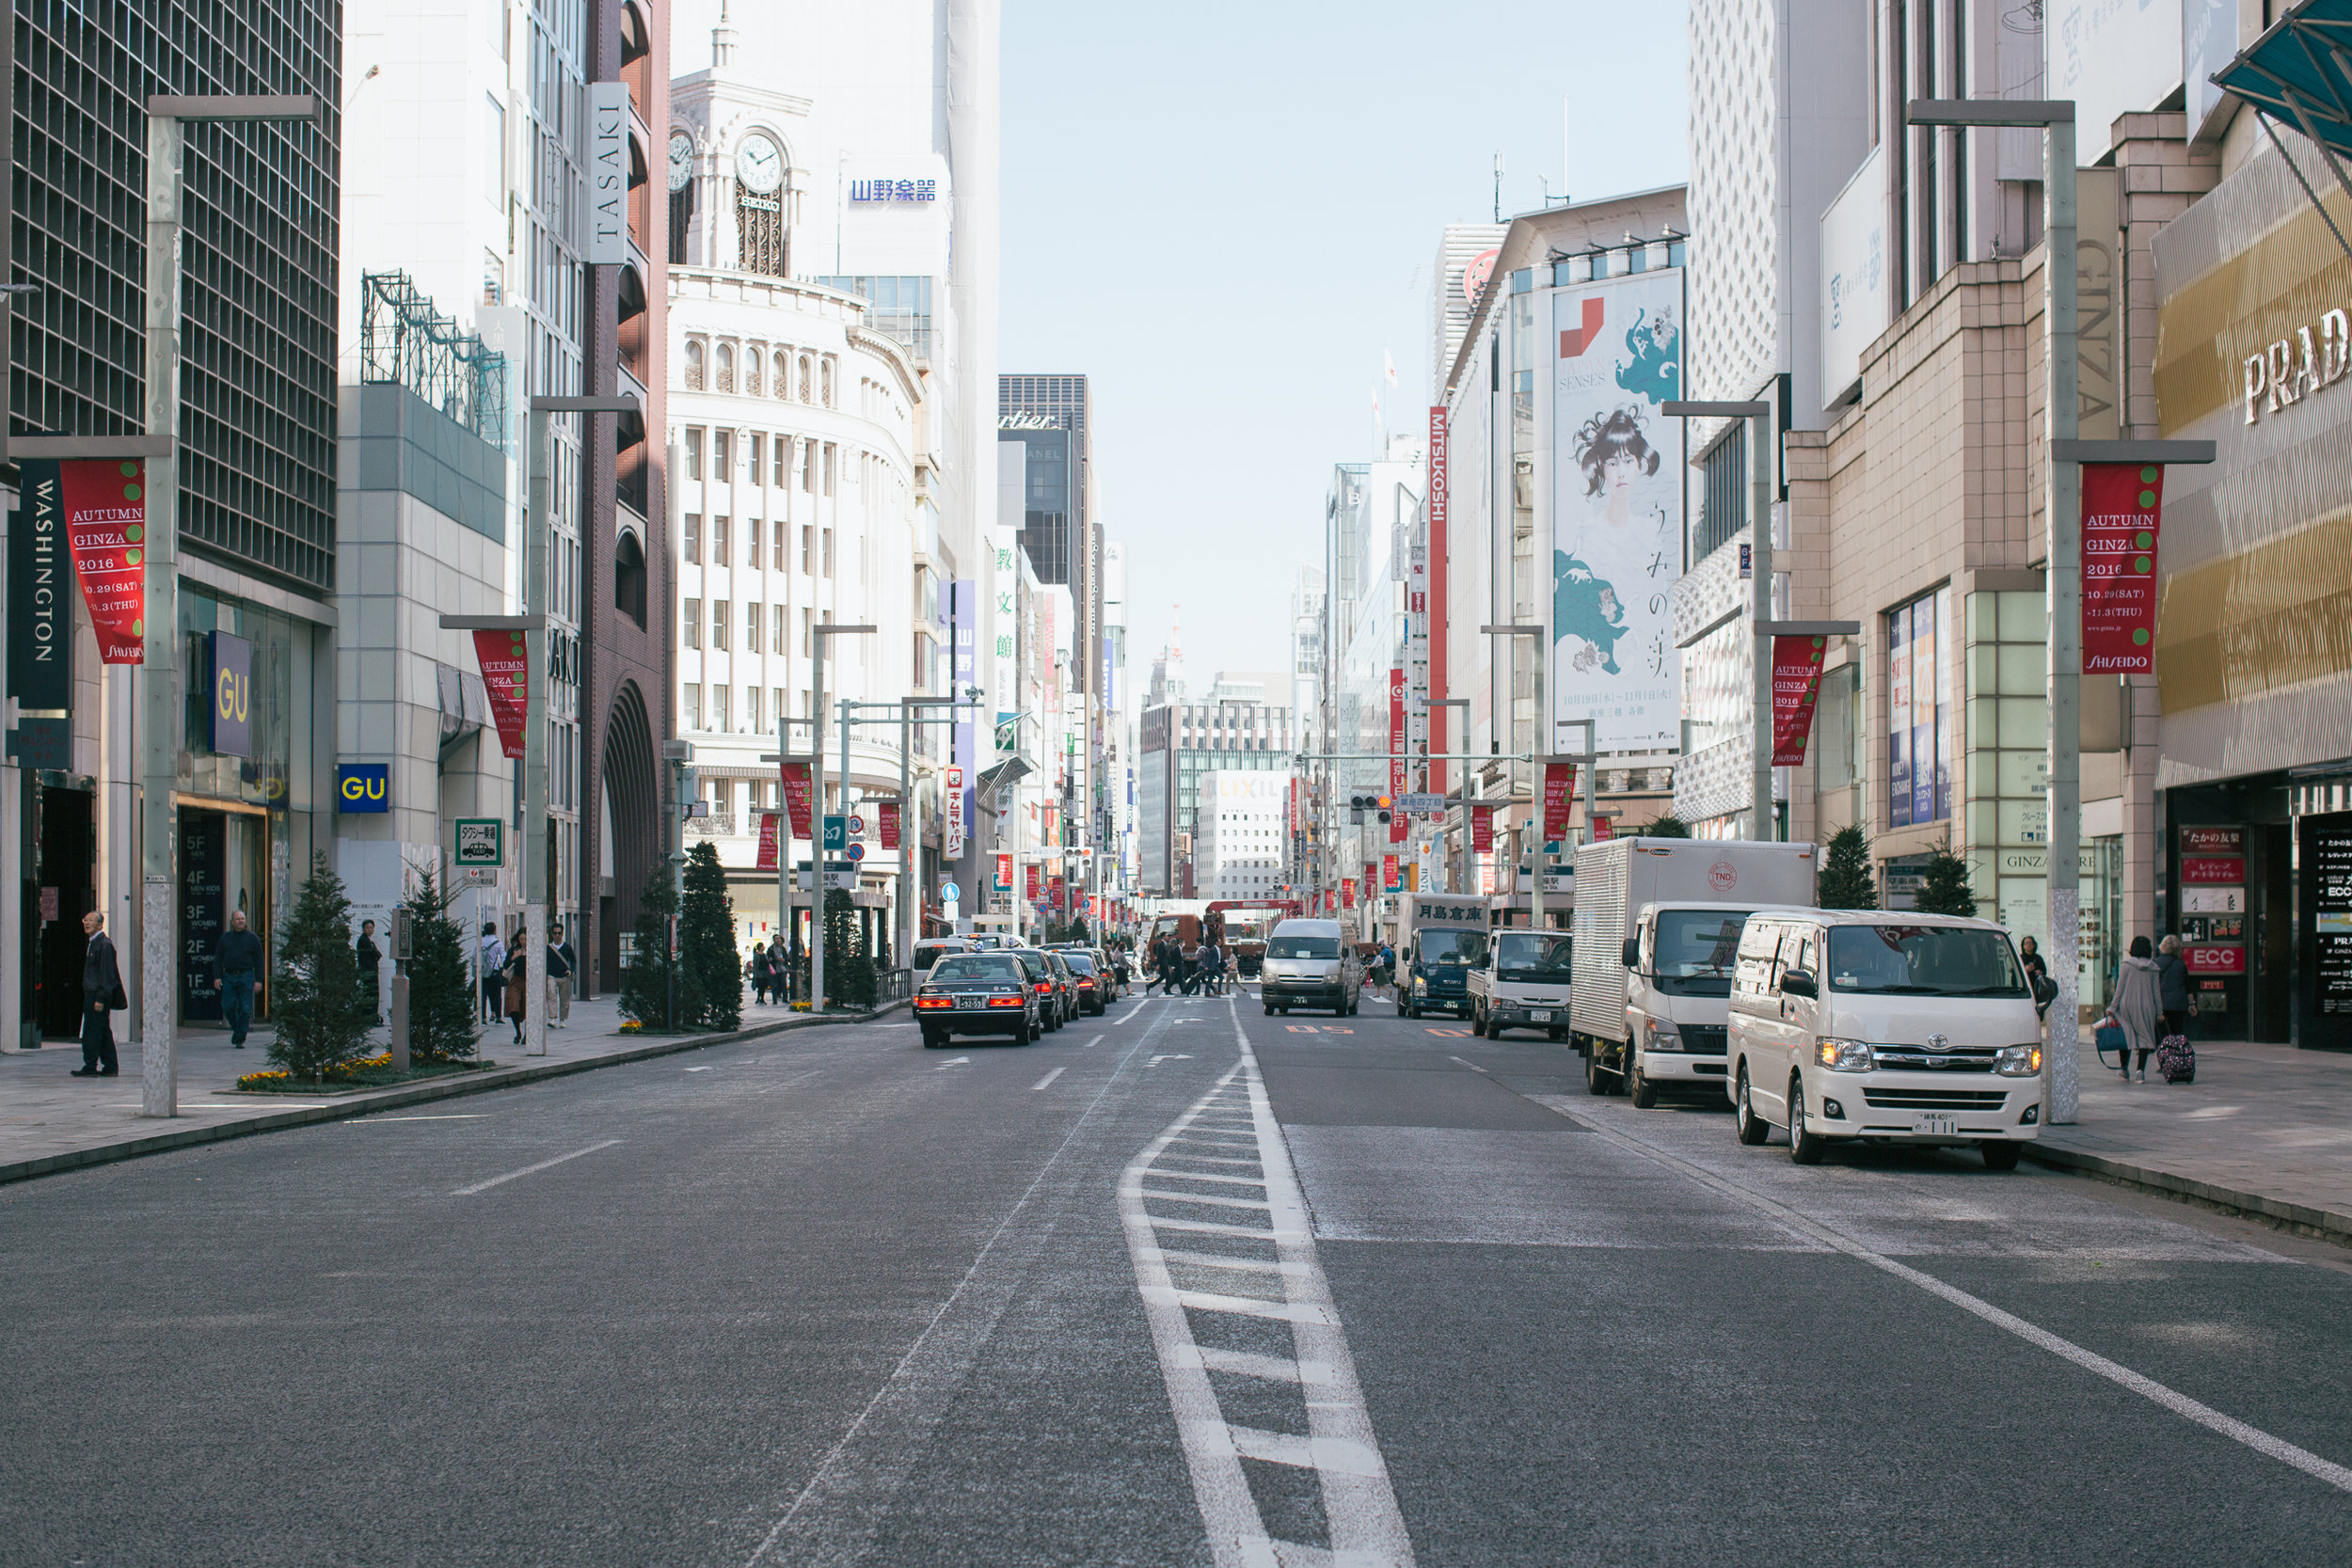 Streets of Ginza. In the upper left of the photo you can see the iconic Ginza clock tower on top of Wako. Prada opposite GU. Just thinking about how much one purchase at Prada could buy at GU...